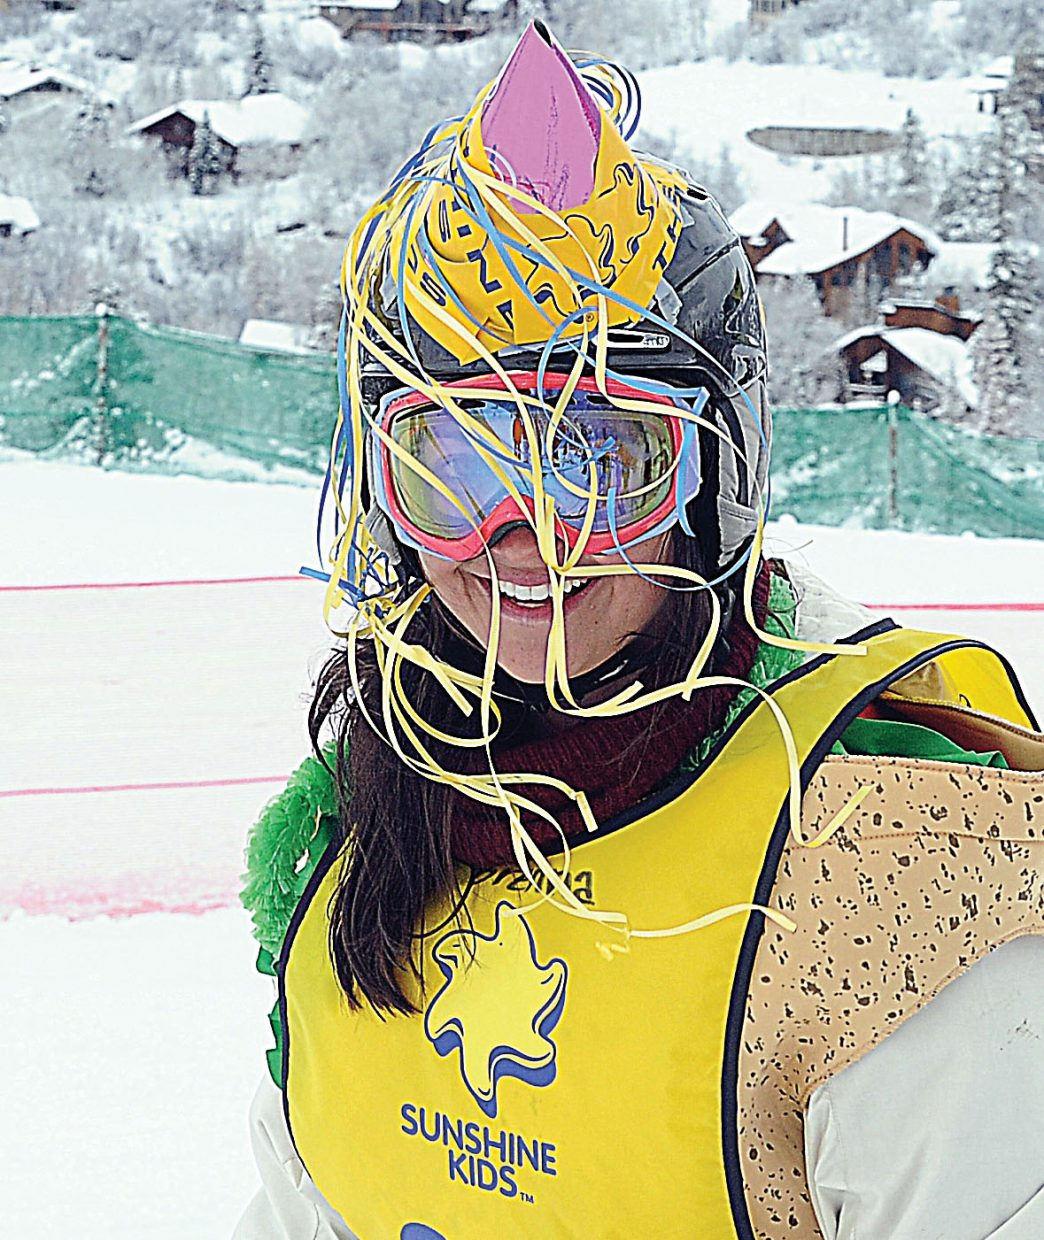 Louisiana resident Brenna Huckaby smiles at the base of the Bashor ski run Friday morning at the Sunshine Kids annual Winter Games. The Sunshine Kids is a nonprofit organization dedicated to children with cancer. It provides positive group activities and emotional support for young cancer patients, and brings a group to Steamboat Ski Area each year.